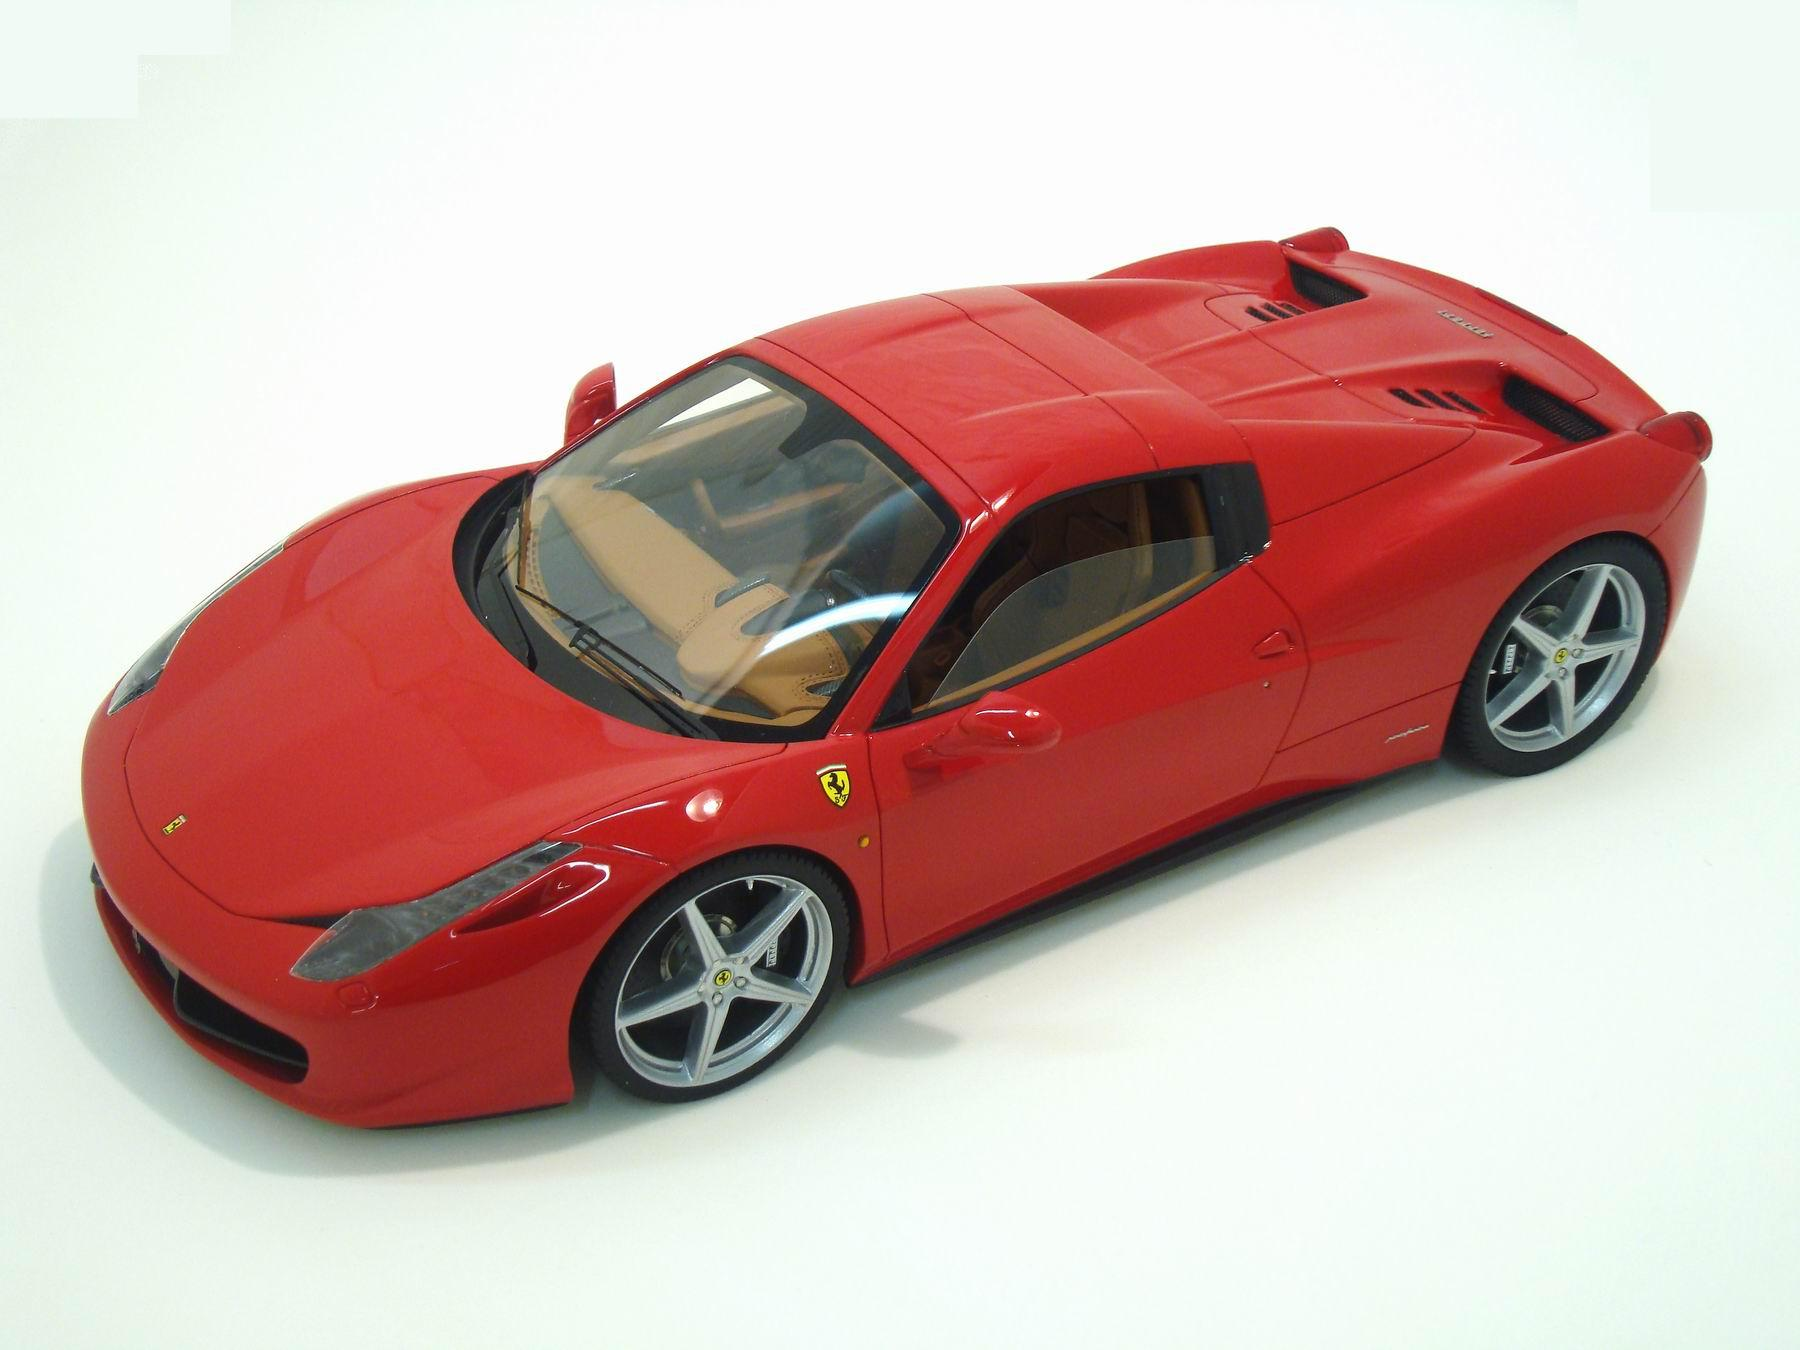 ferrari 458 spider hard top 1 18 mr collection models. Black Bedroom Furniture Sets. Home Design Ideas